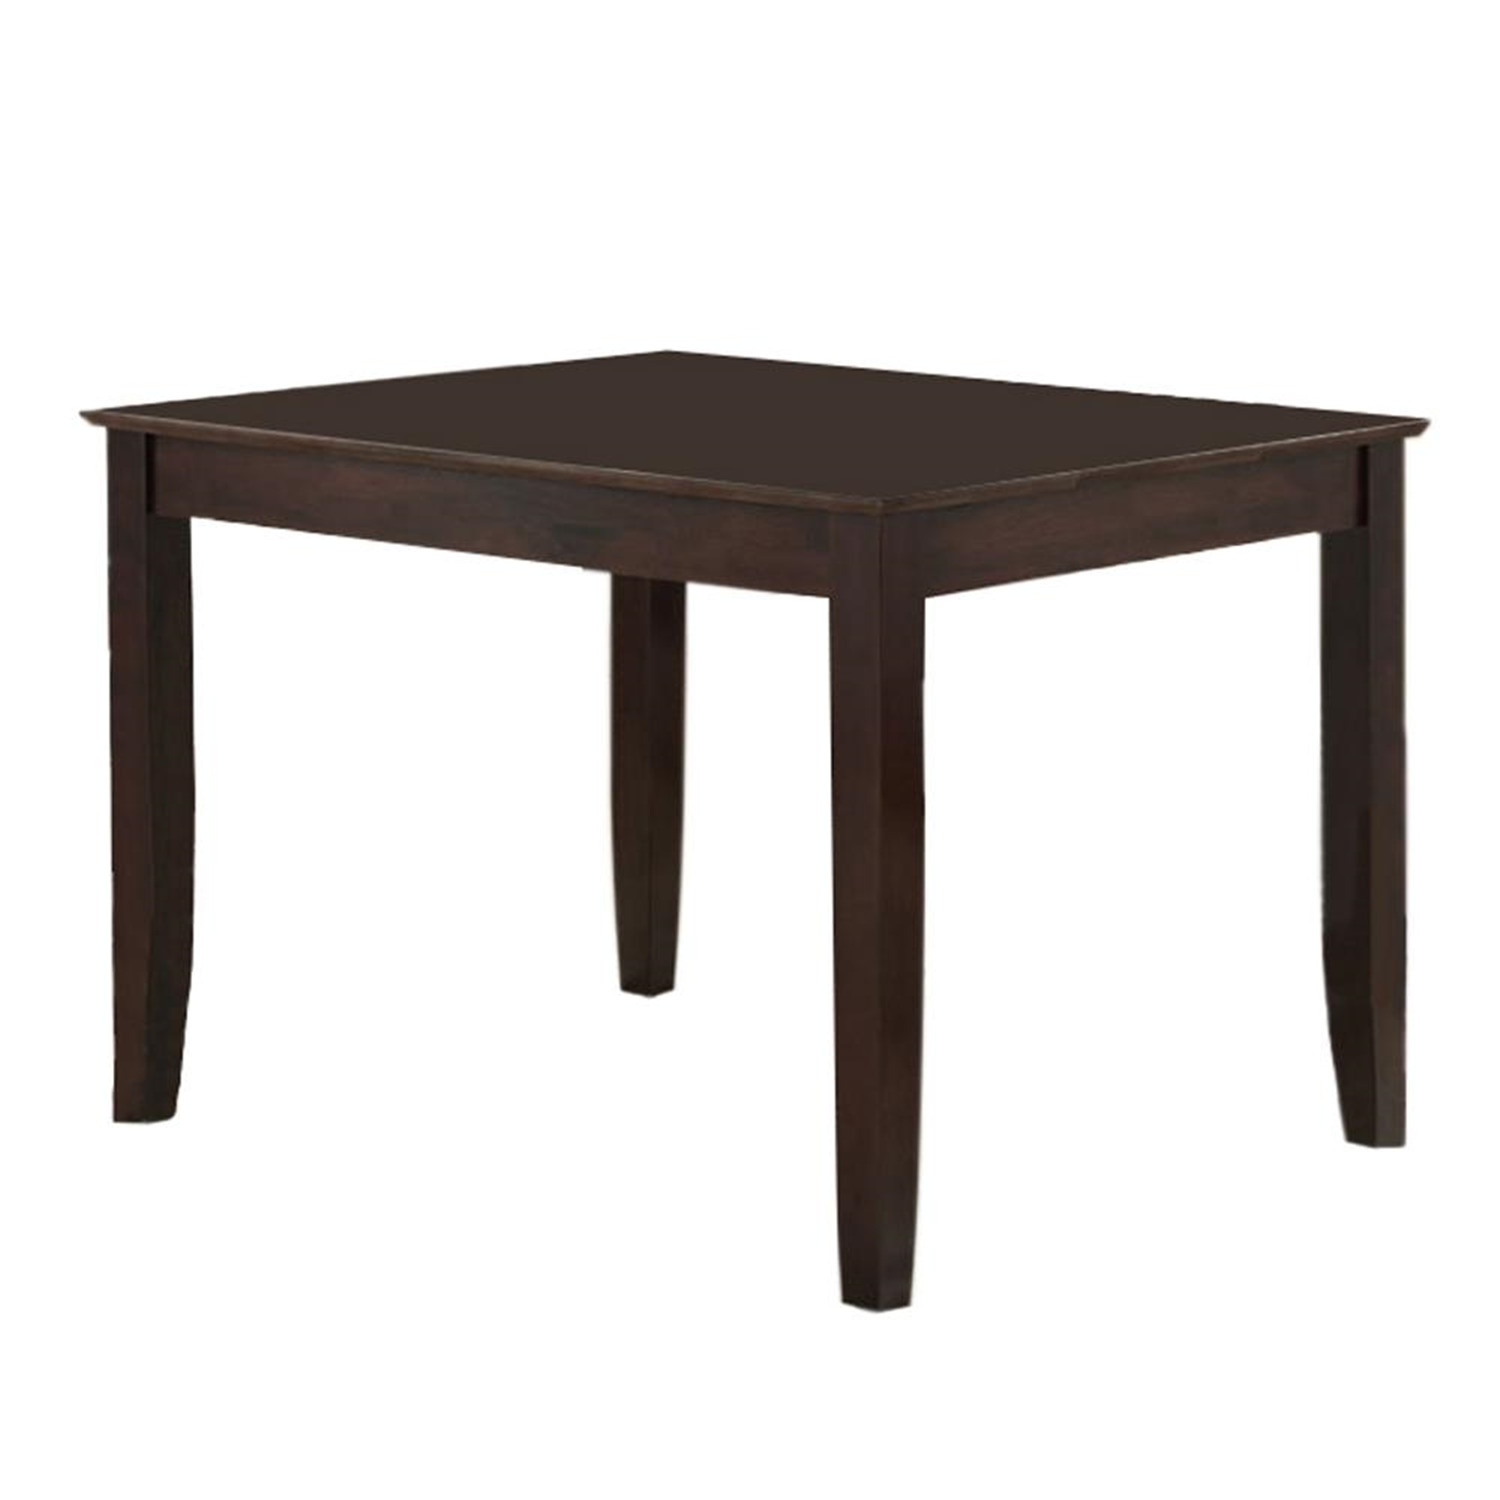 Walker edison solid wood dining table by oj commerce 219 for Hardwood dining table